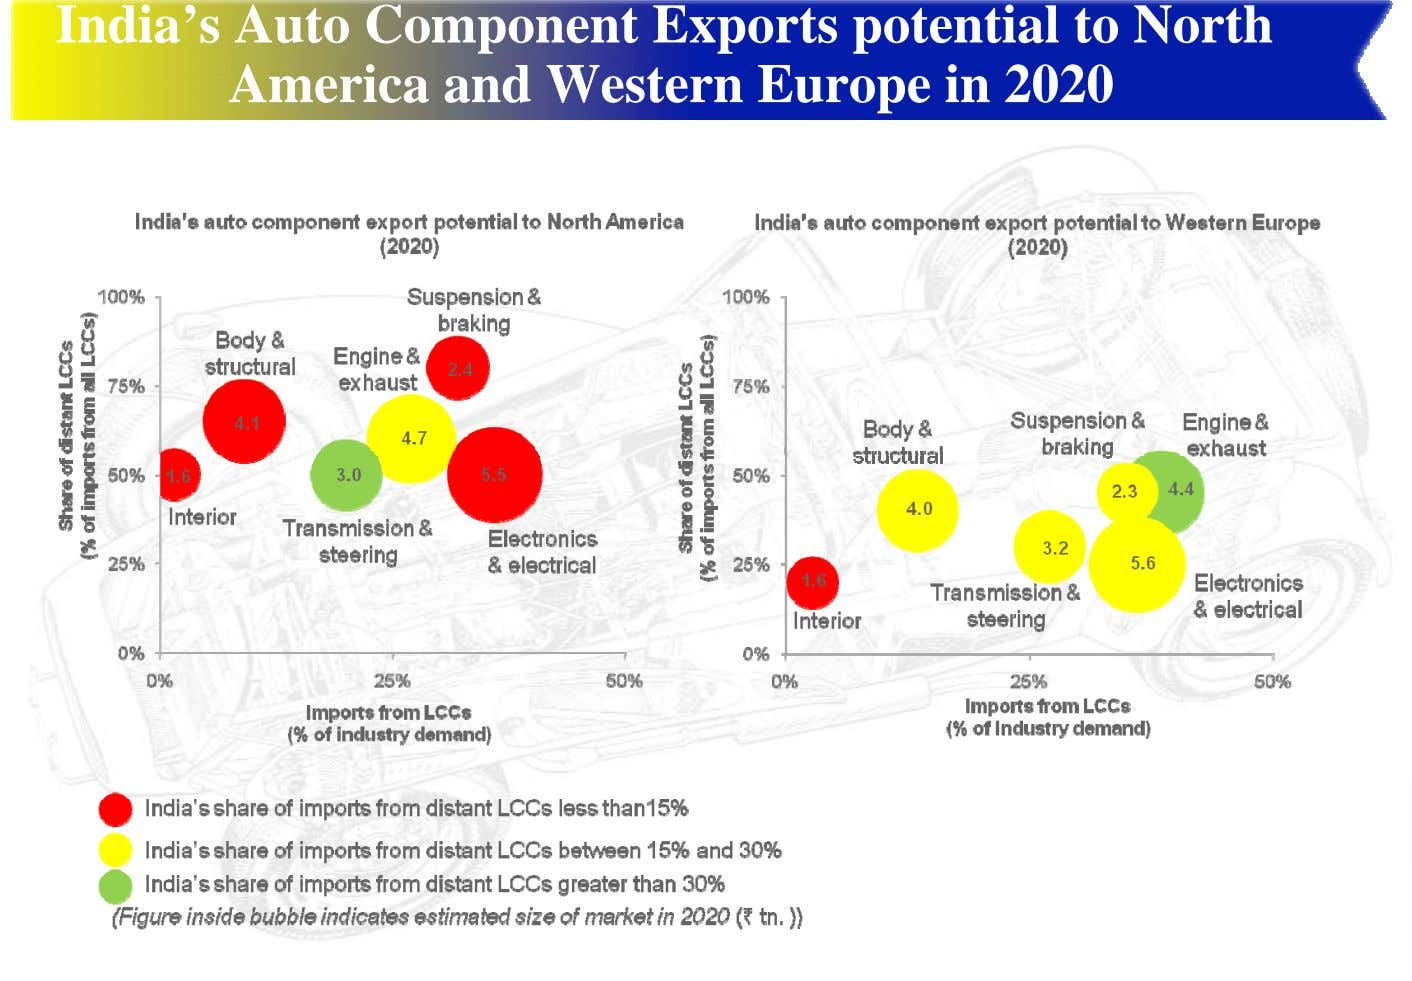 India's Auto Component Exports potential to North America and Western Europe in 2020